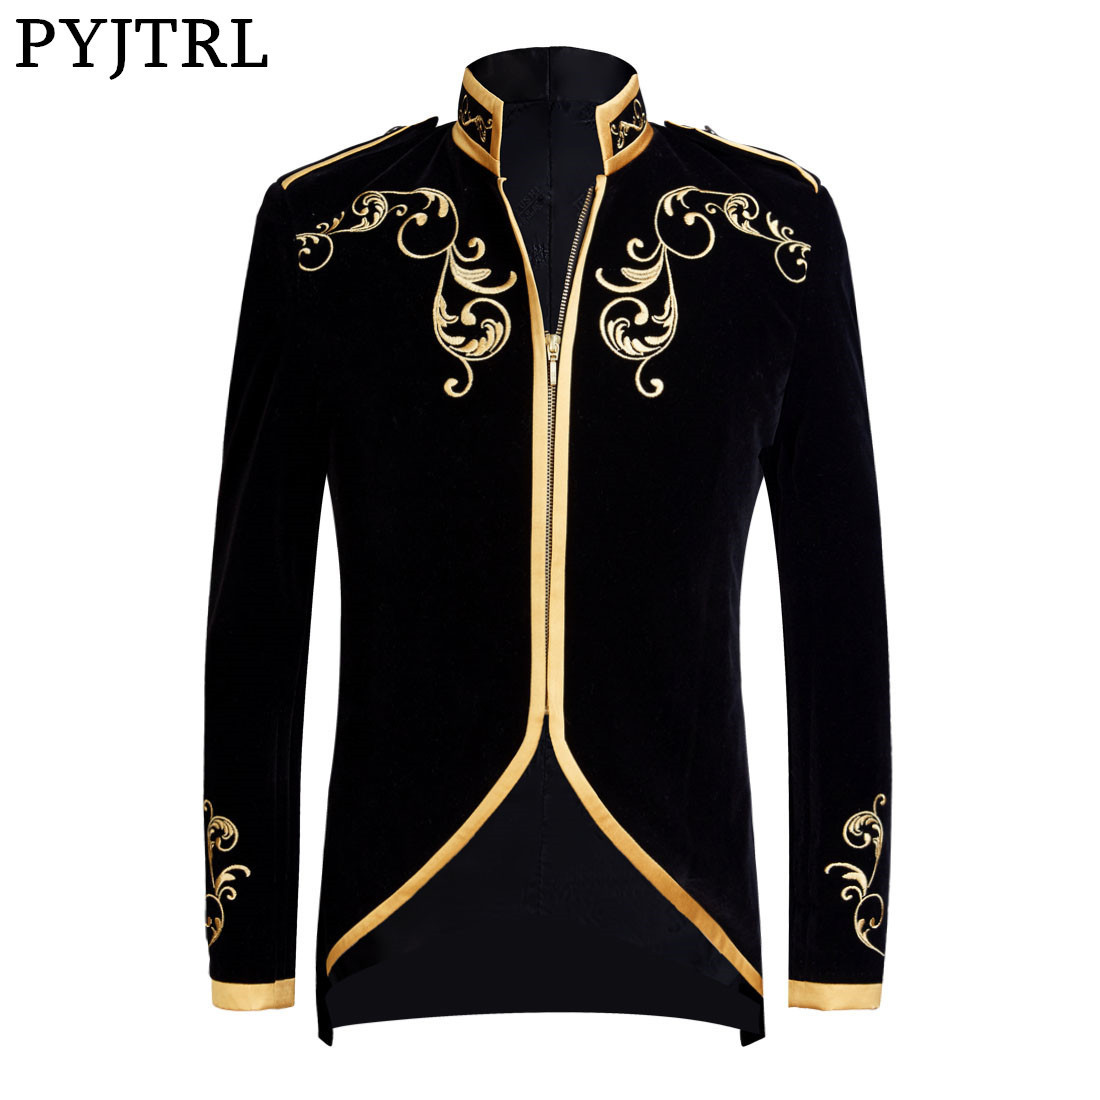 PYJTRL Suit Jacket Blazer Coat Slim-Fit Singers Velvet Gold Wedding British-Style Black